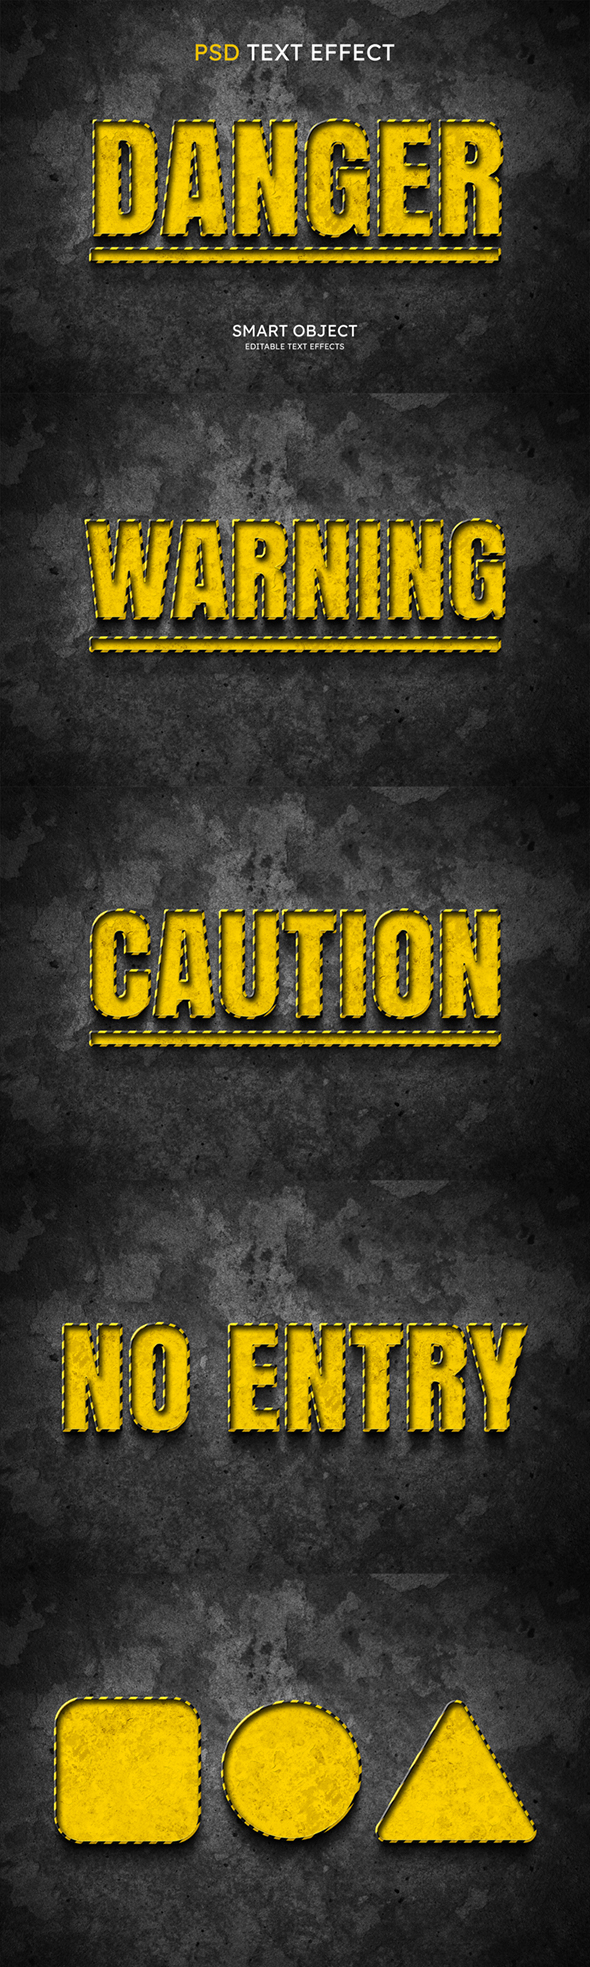 Danger Text Effect Style